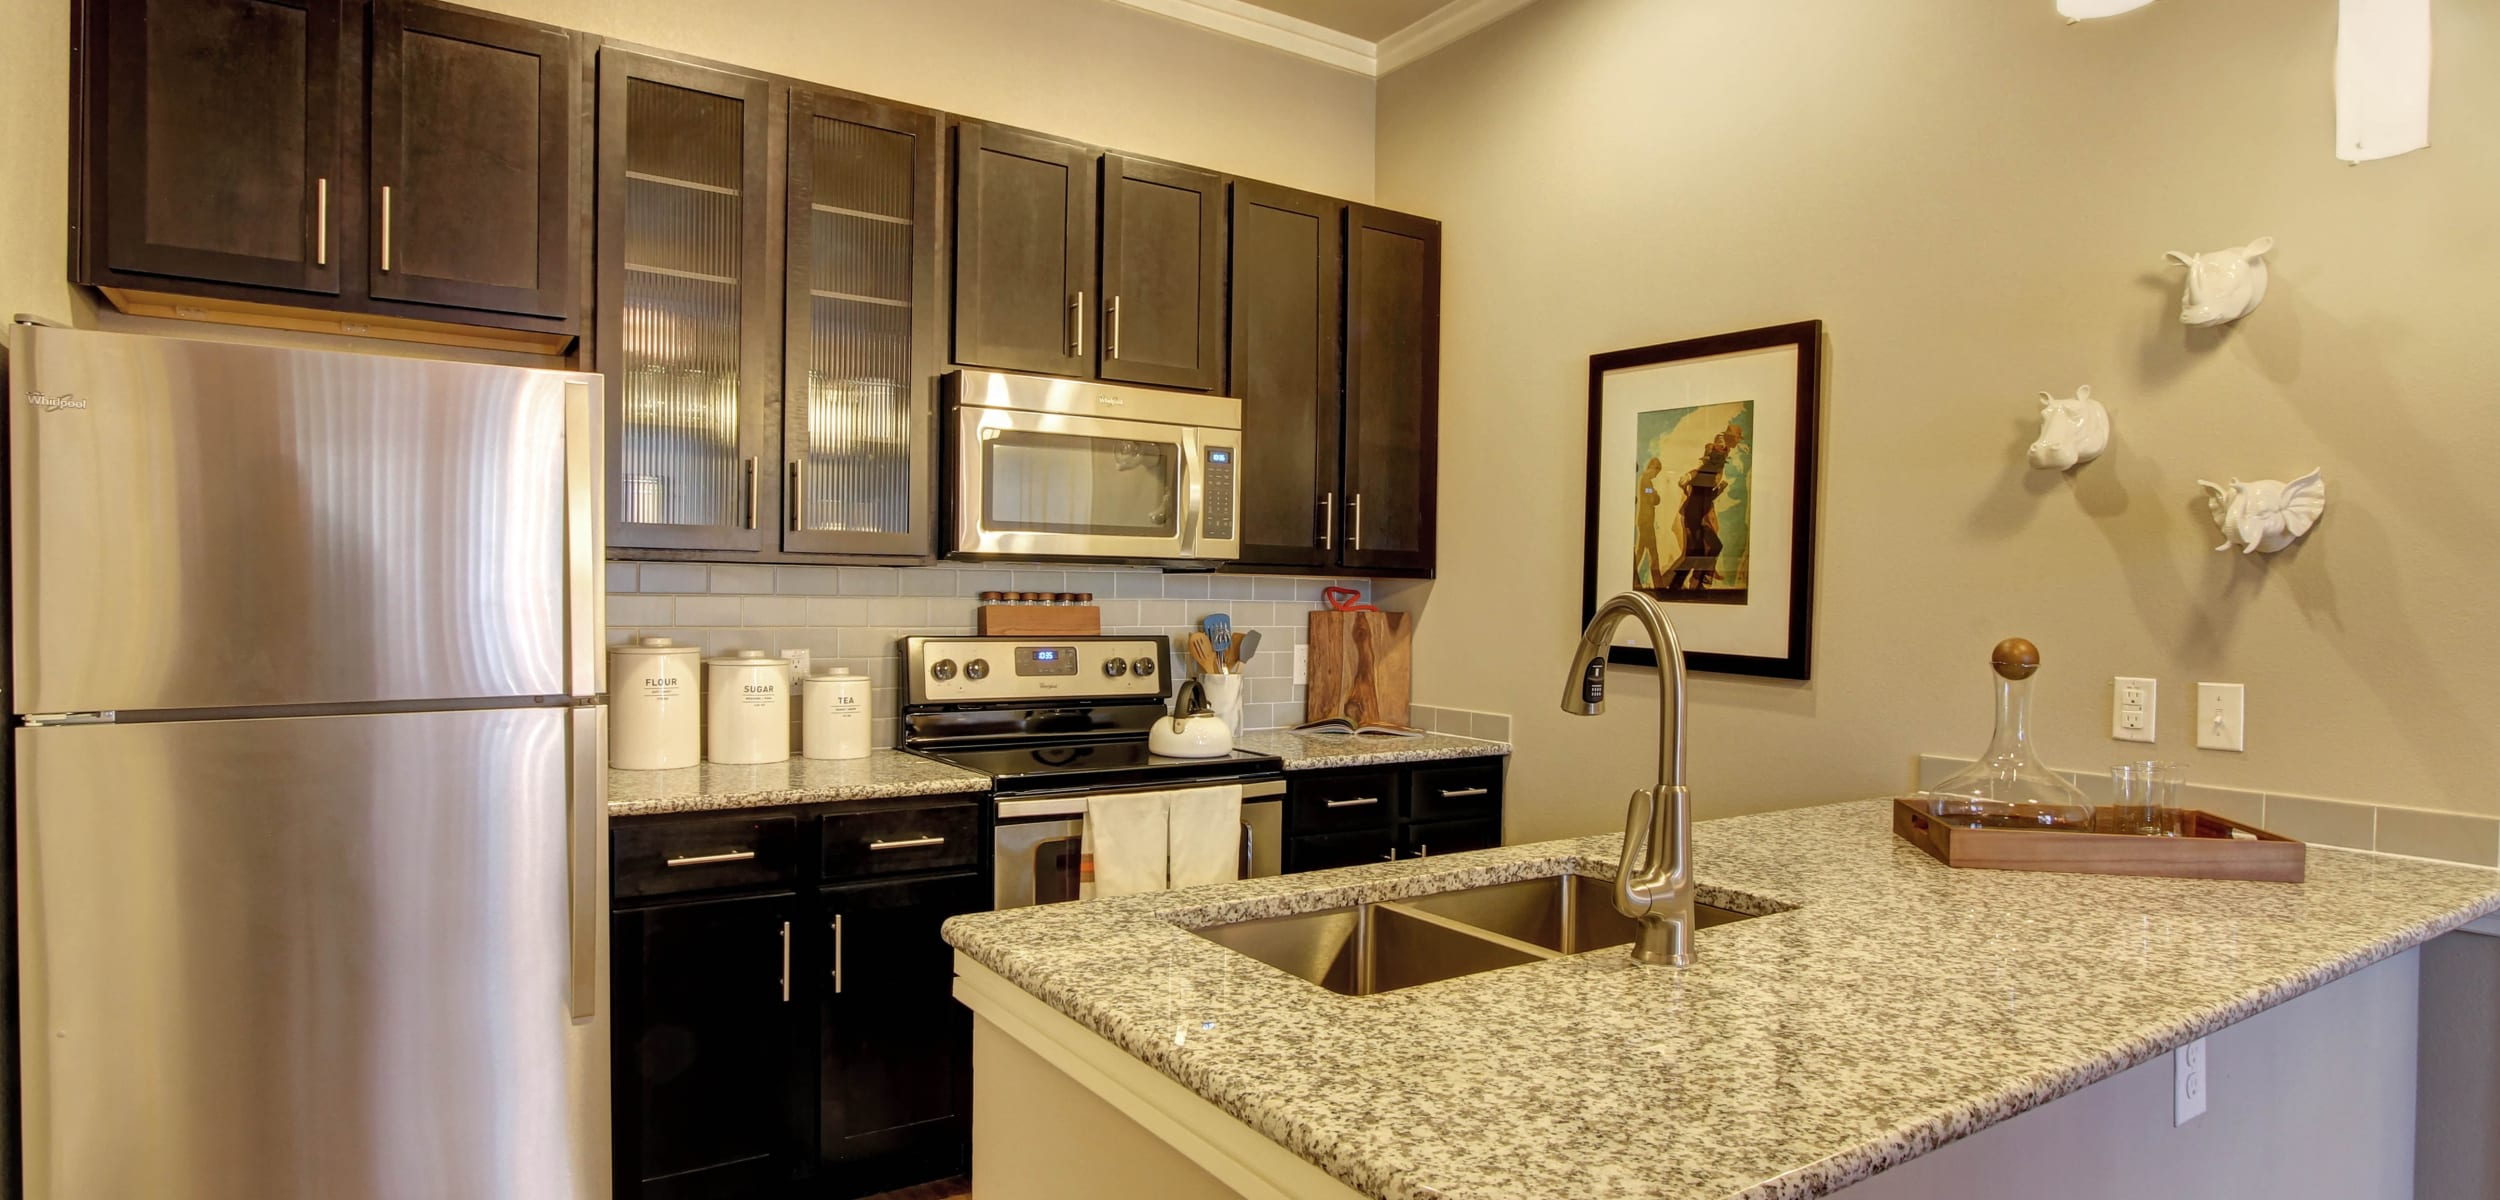 Modern kitchen with stainless steel appliances and granite countertops at Marquis at Barton Trails in Austin, Texas